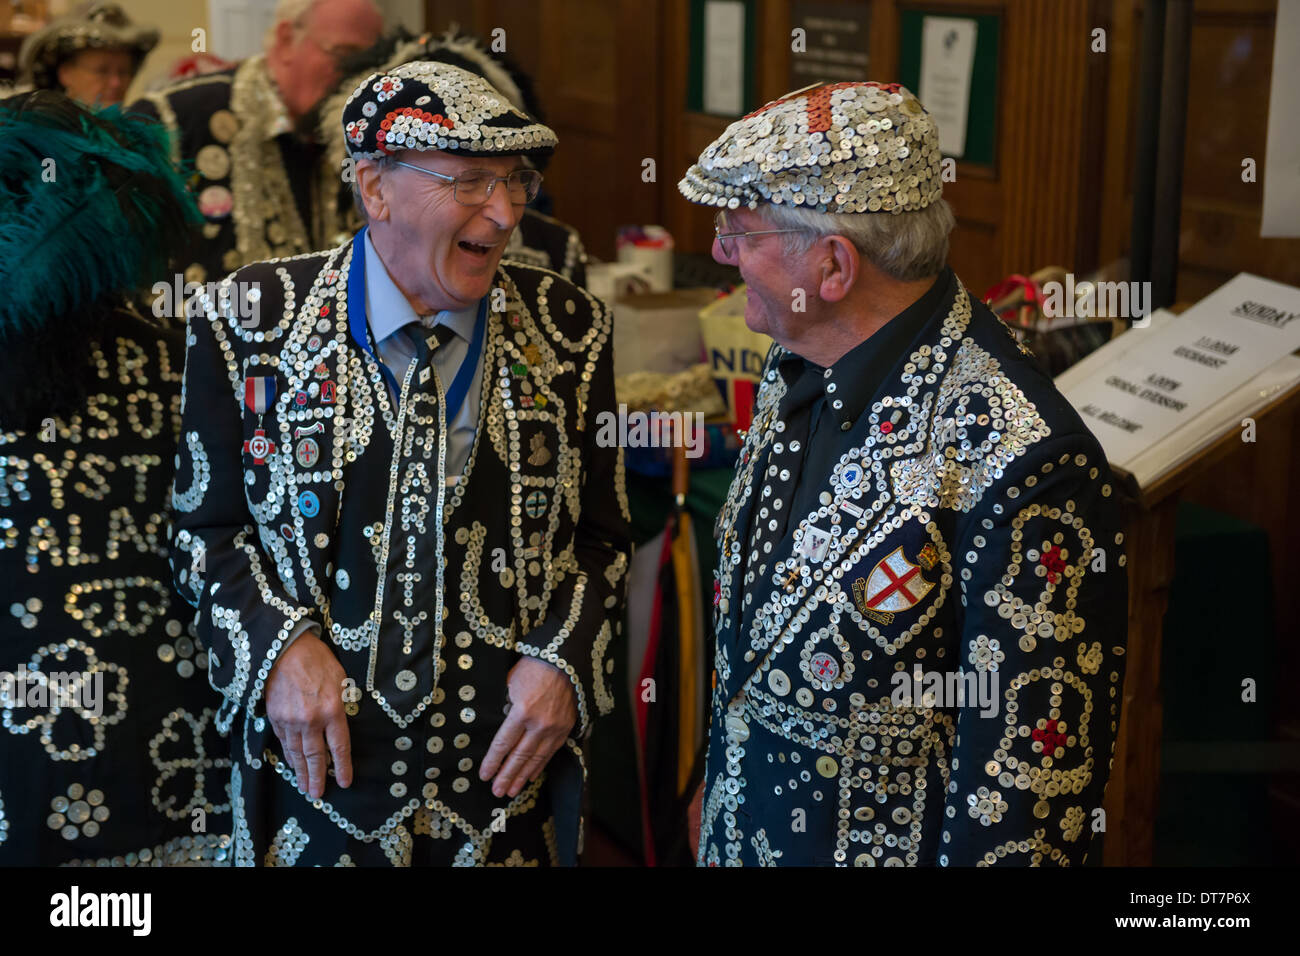 Pearly Kings chatting before the London Pearly Kings and Queens second Harvest Festival, St Paul's Church, Covent Garden, London, England - Stock Image